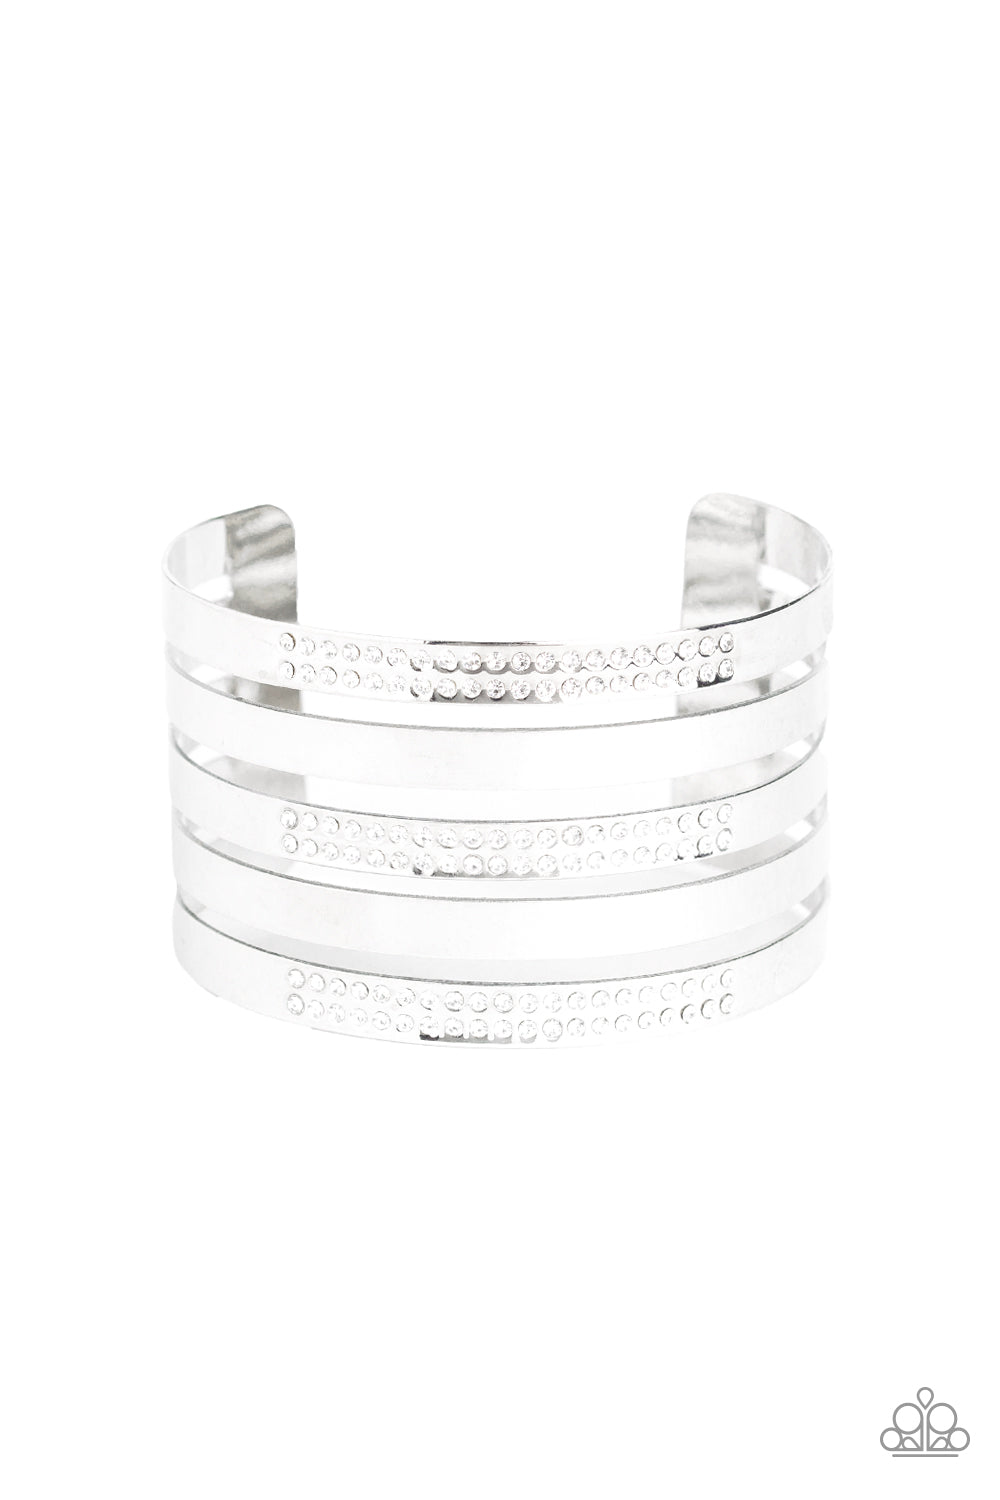 Paparazzi Big Time Shine Silver Cuff Bracelet